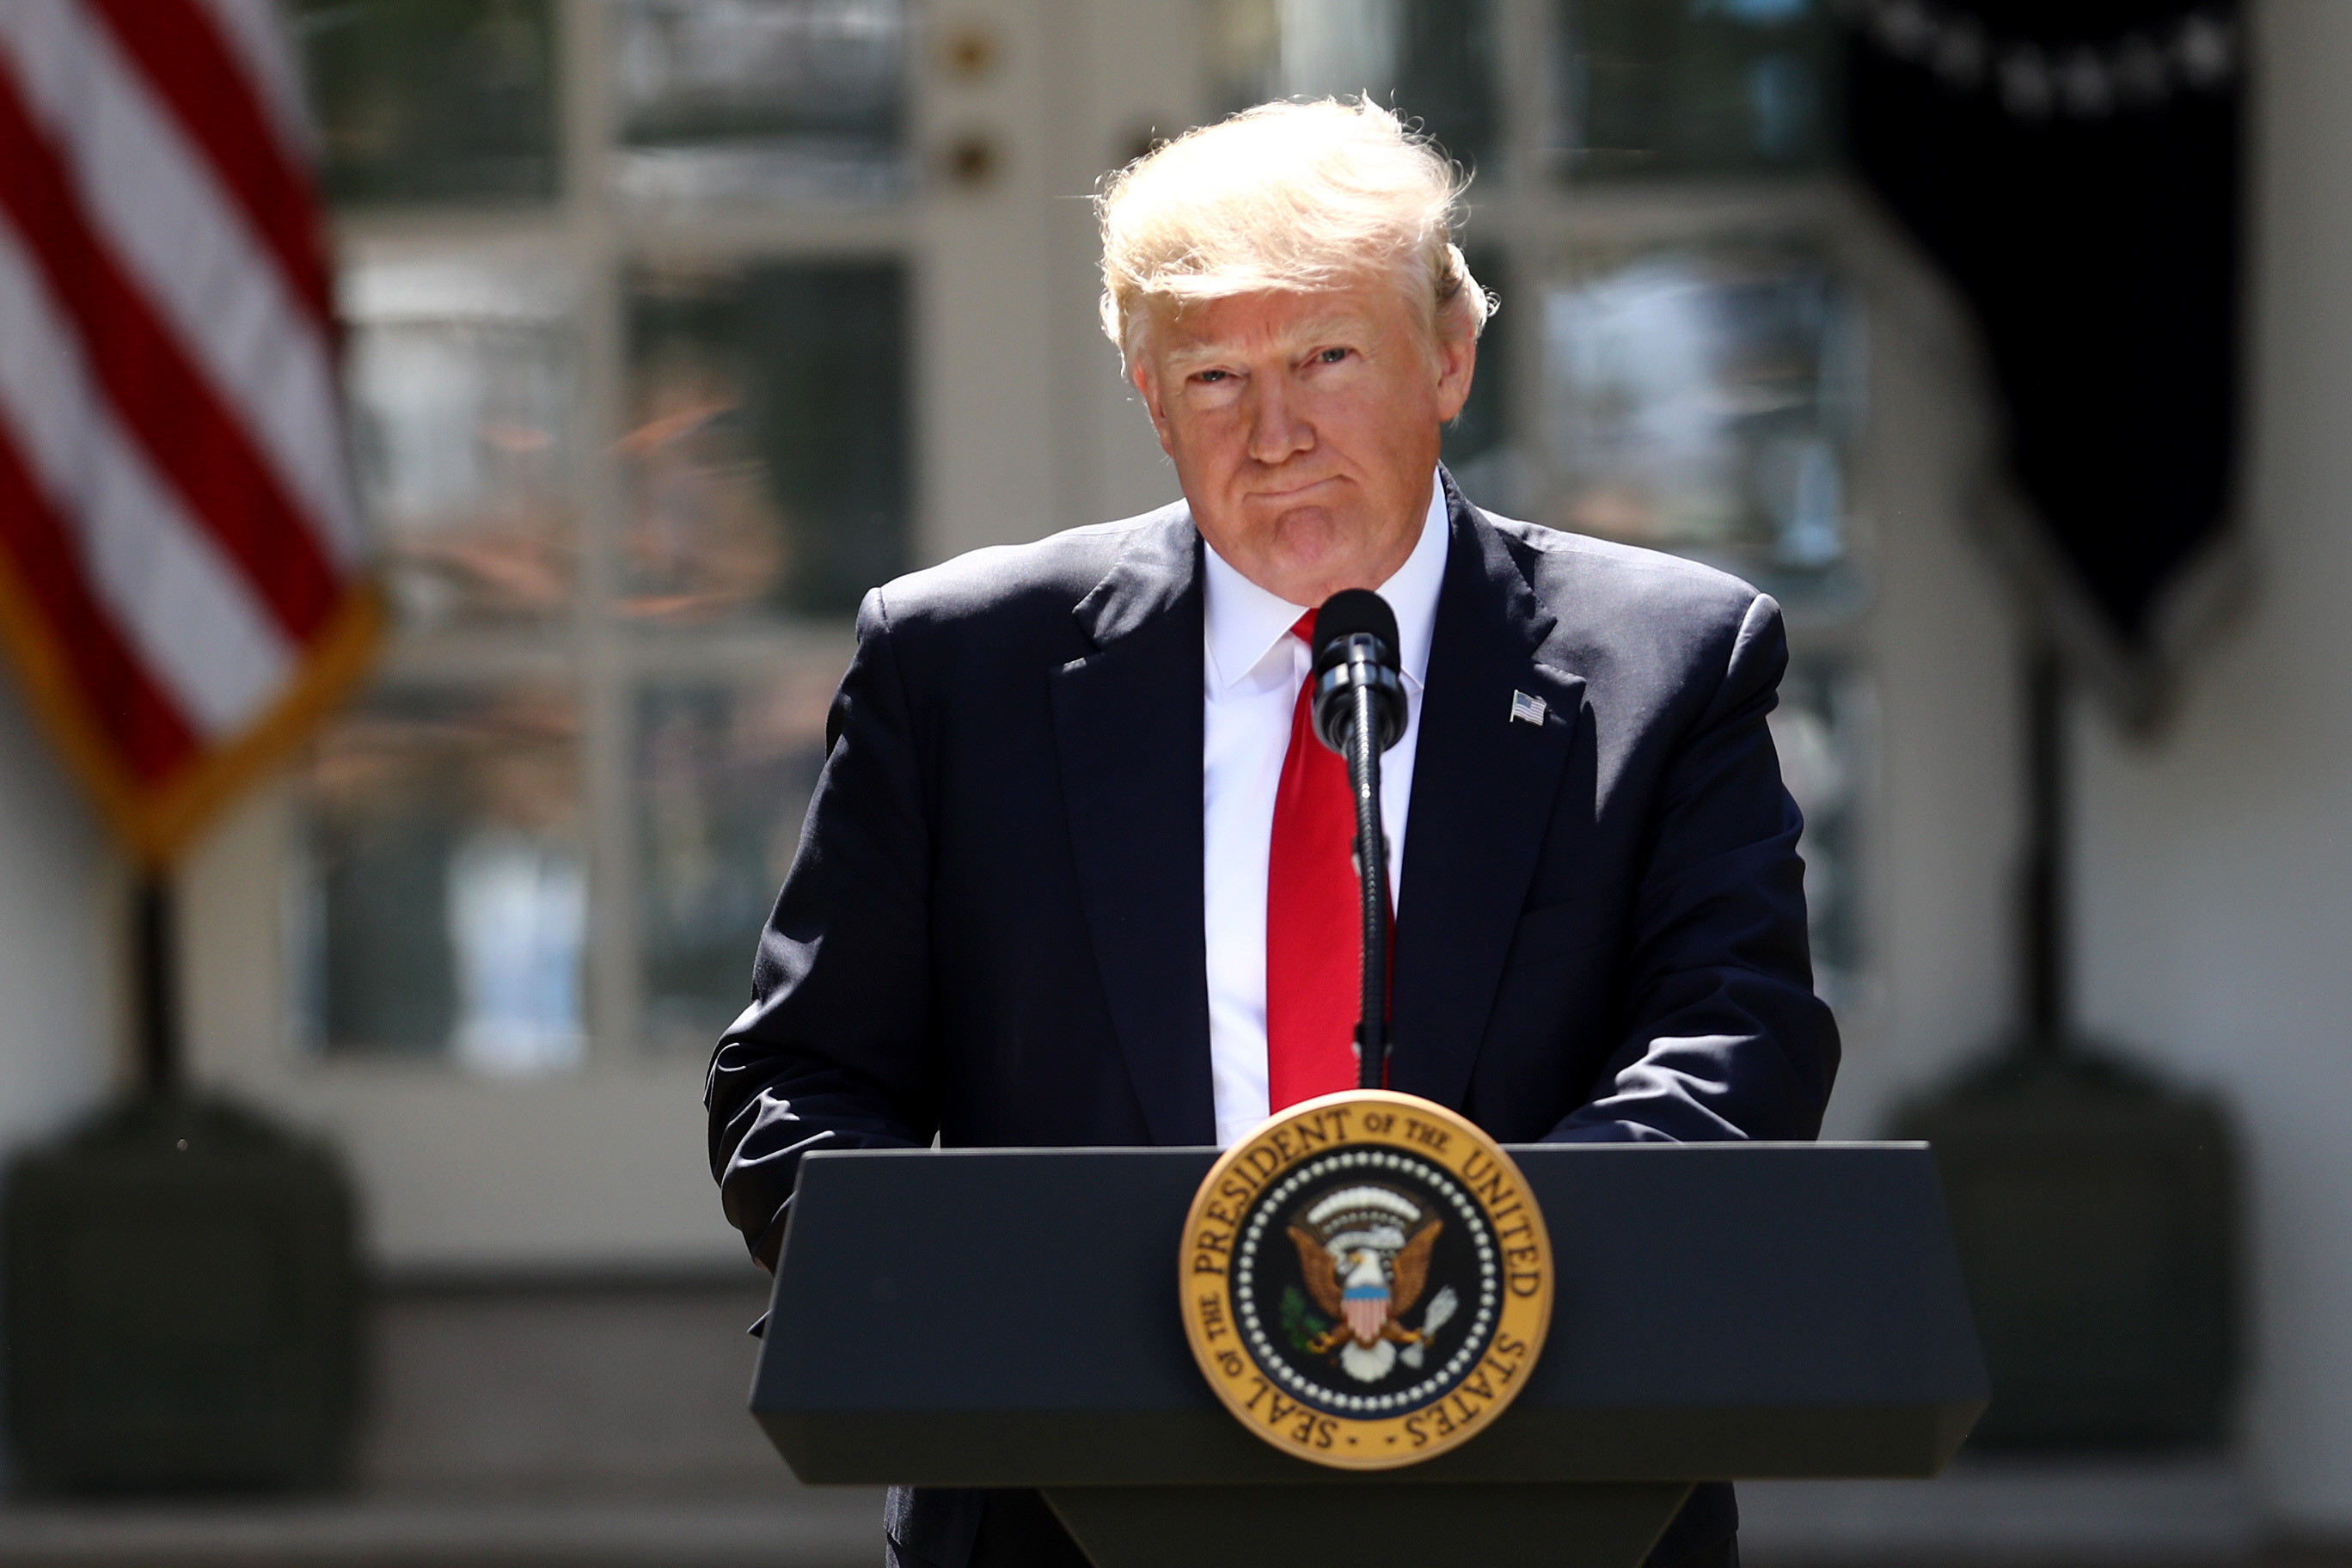 U.S. President Donald Trump pauses while speaking during an announcement in the Rose Garden of the White House in Washington, D.C., in June 2017